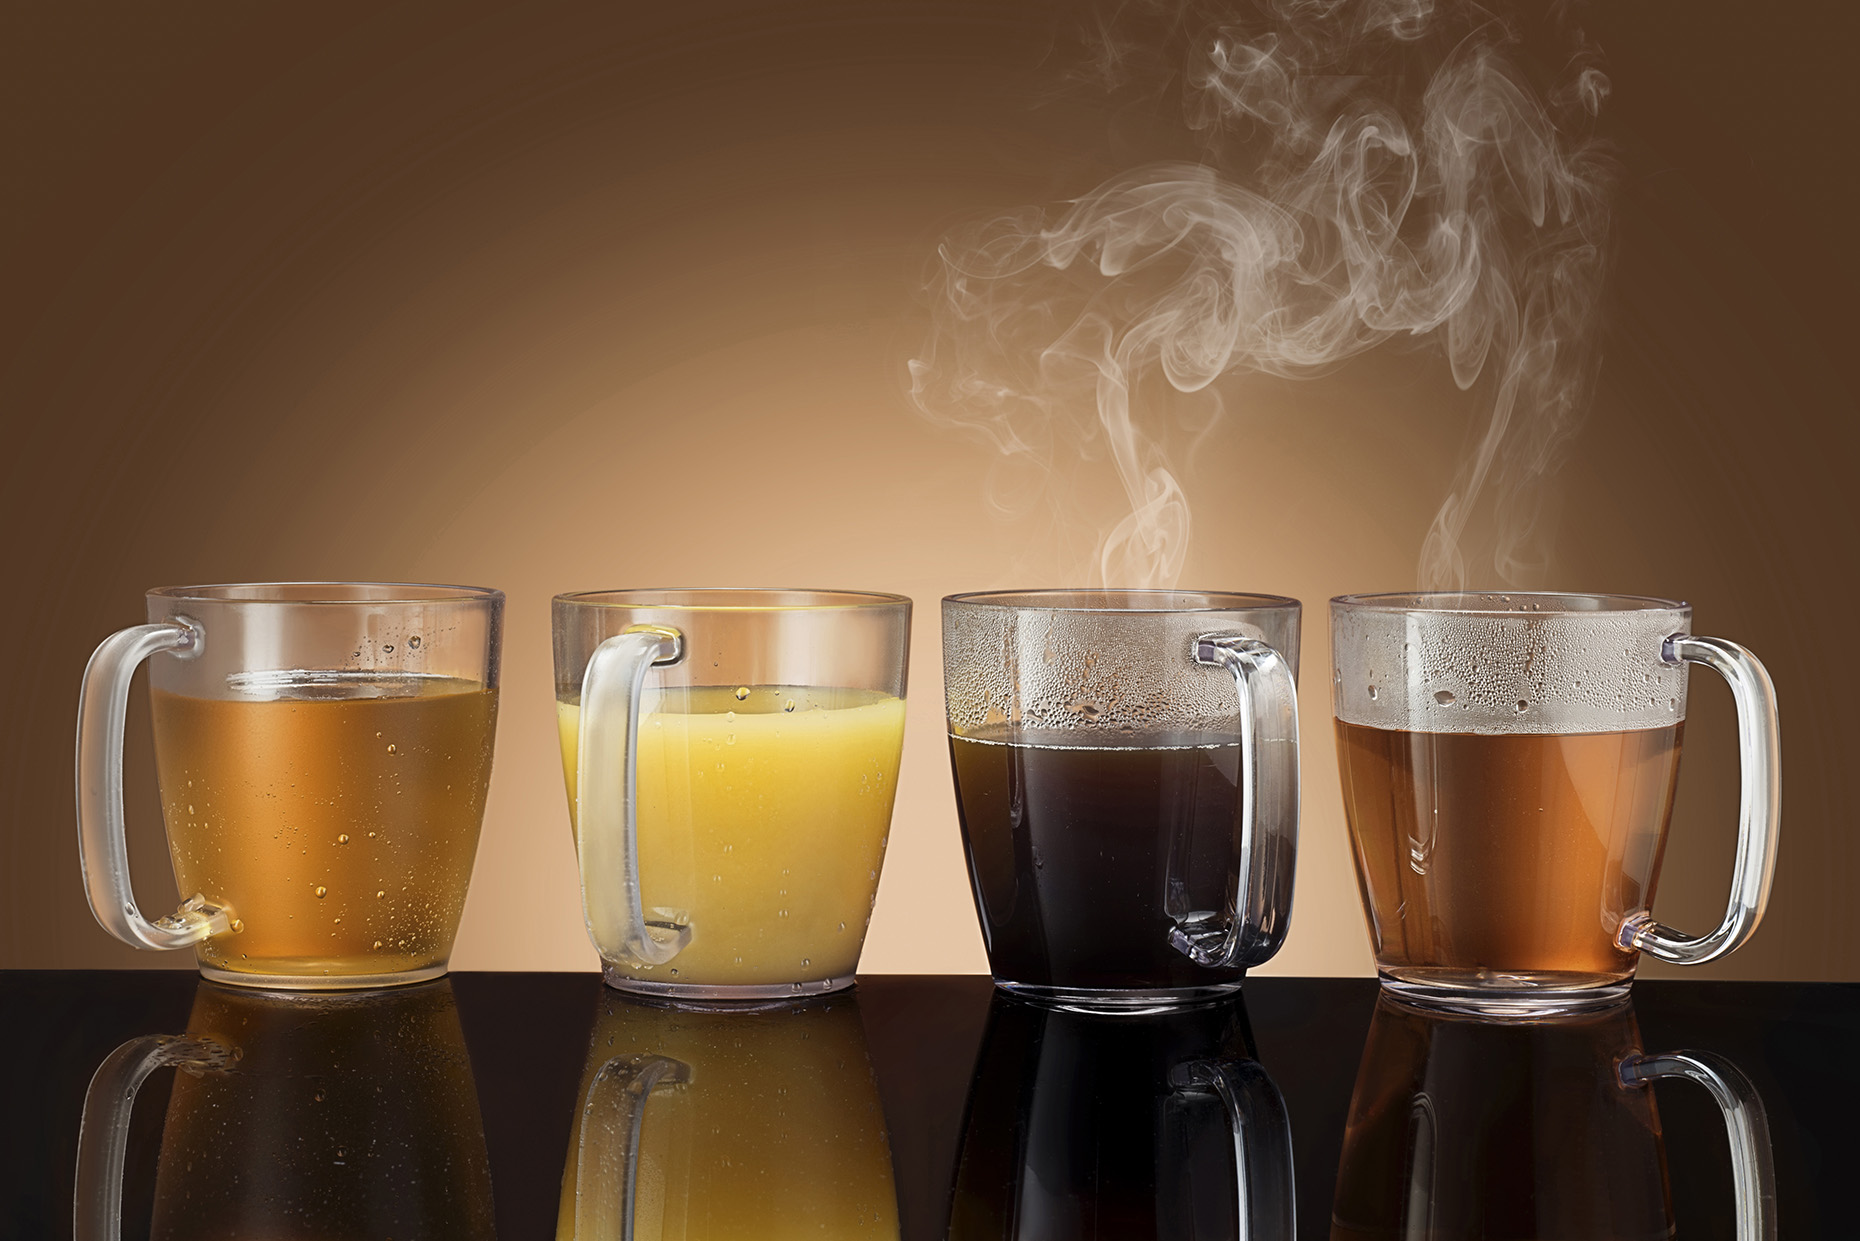 New-York-Beverage-Photography-StillLife-HotLiquids